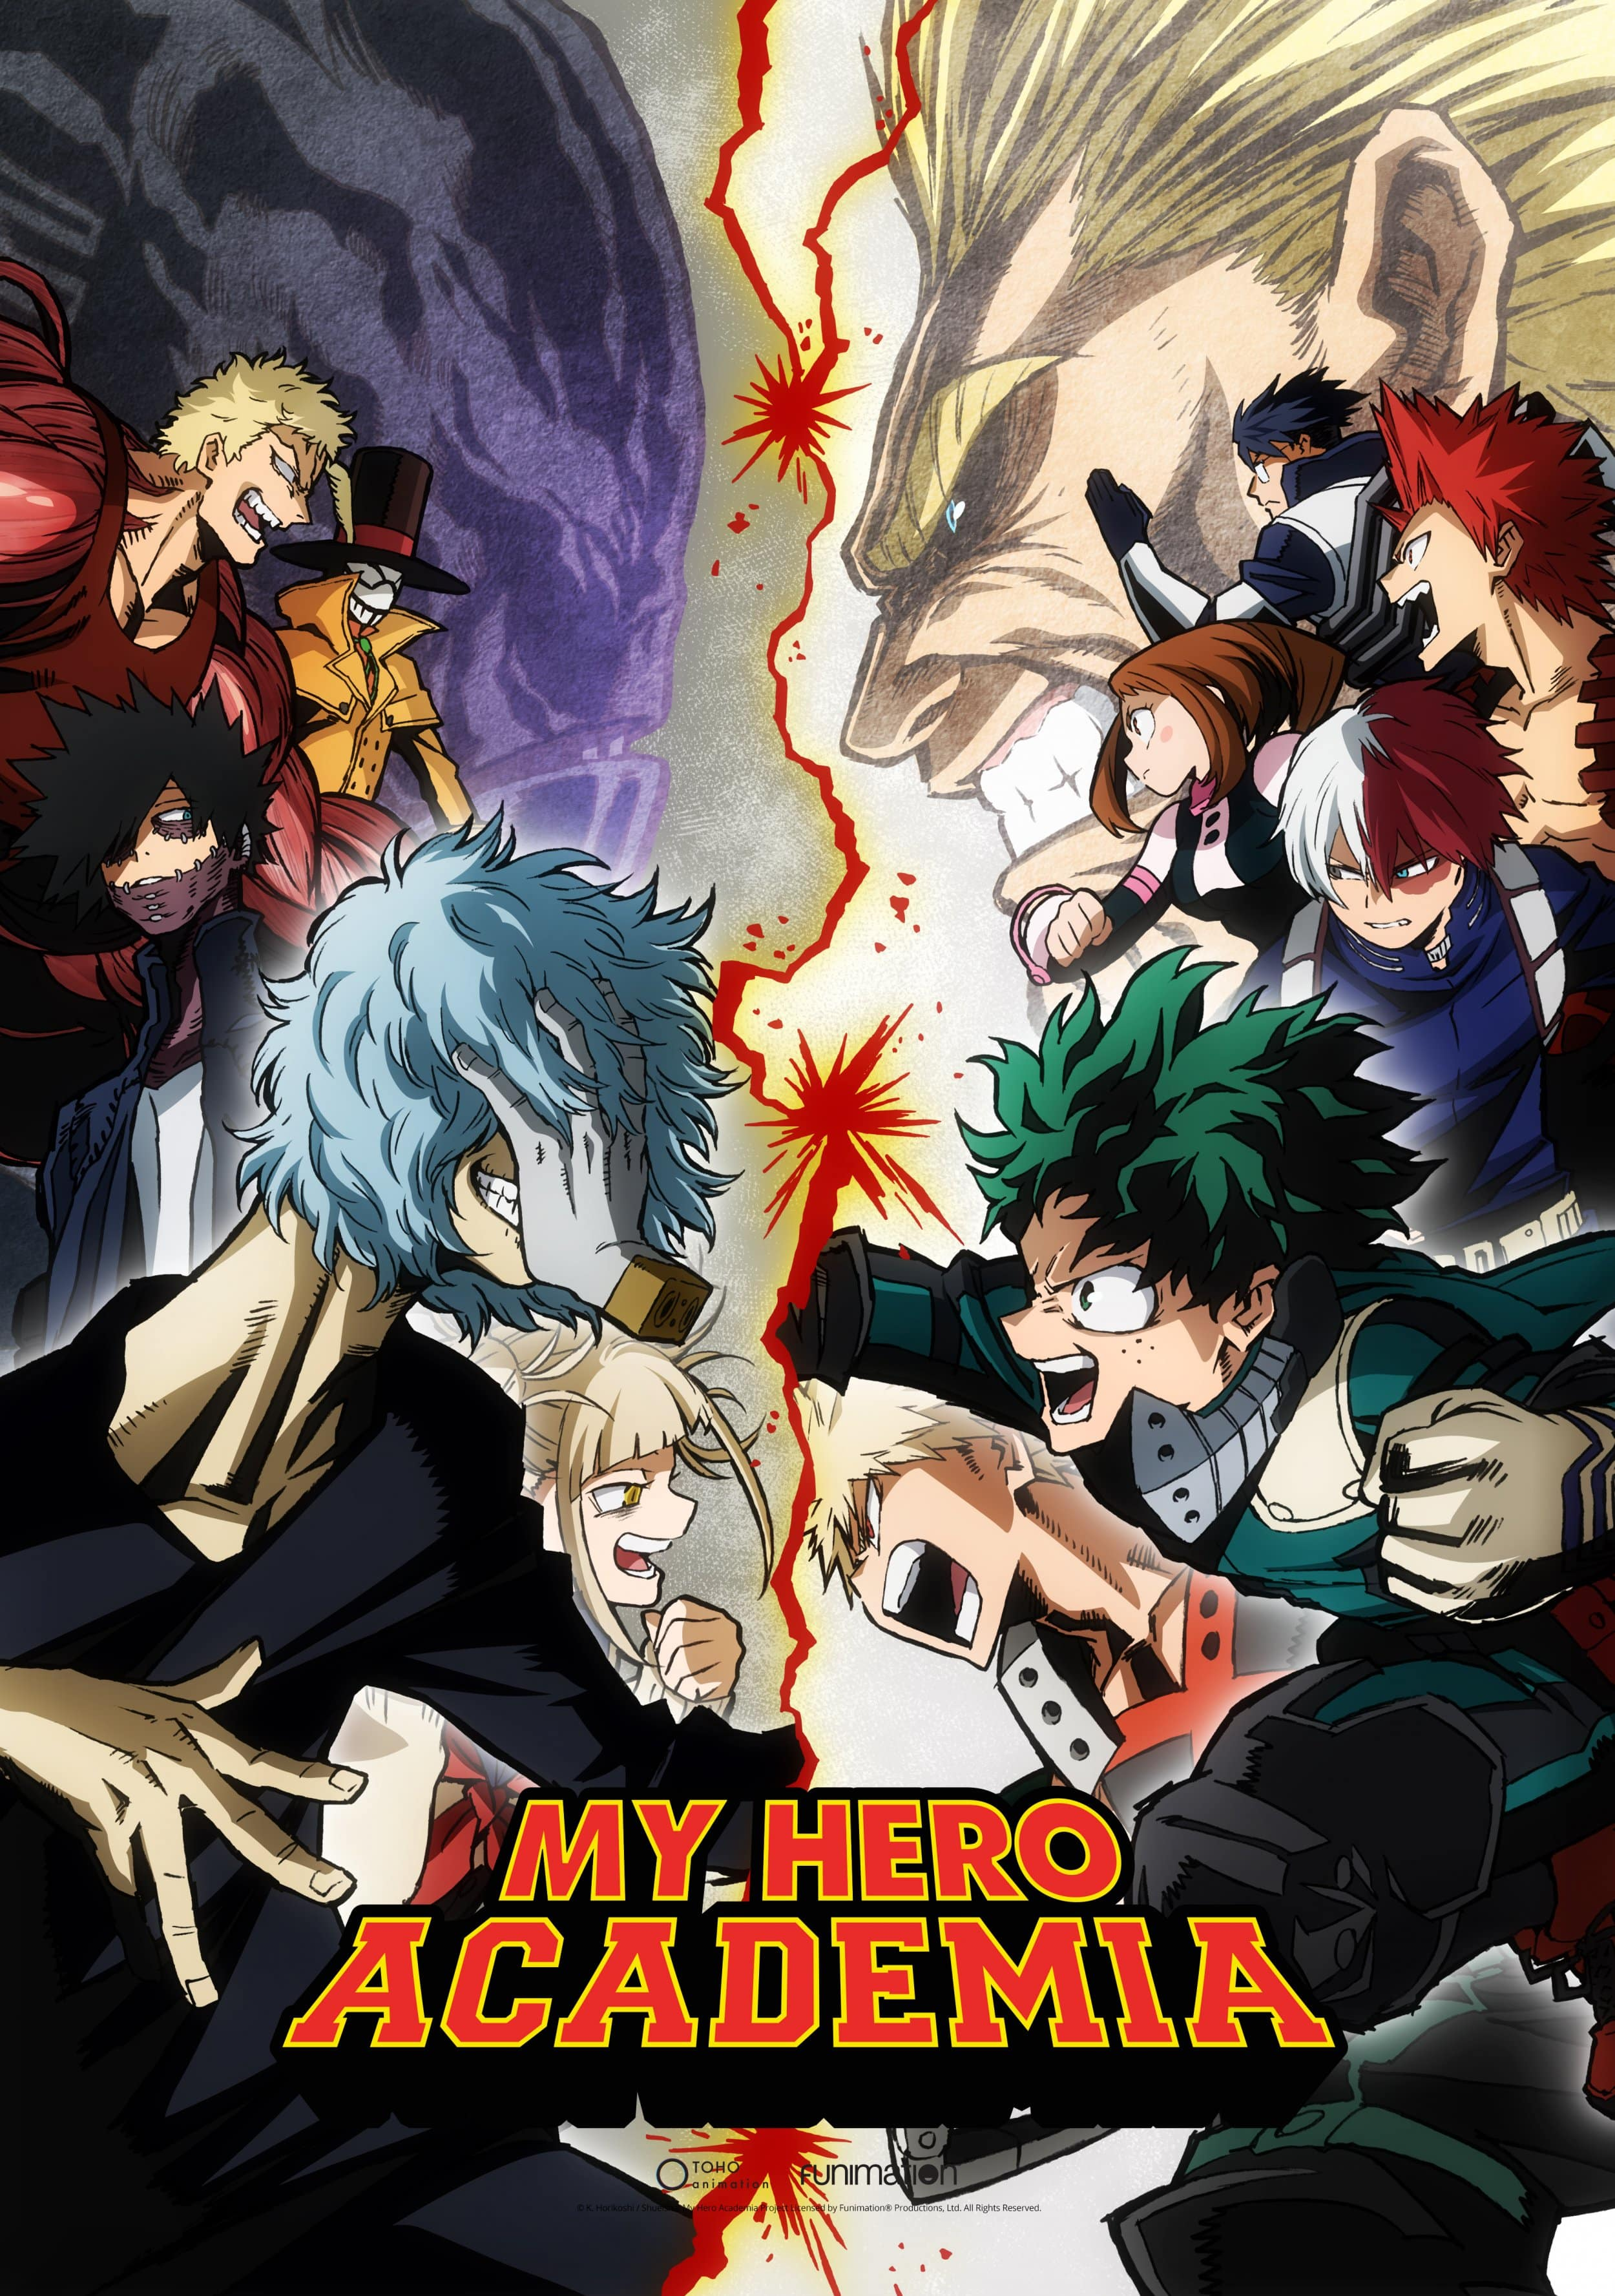 My Hero Academia Background Kolpaper Awesome Free Hd Wallpapers